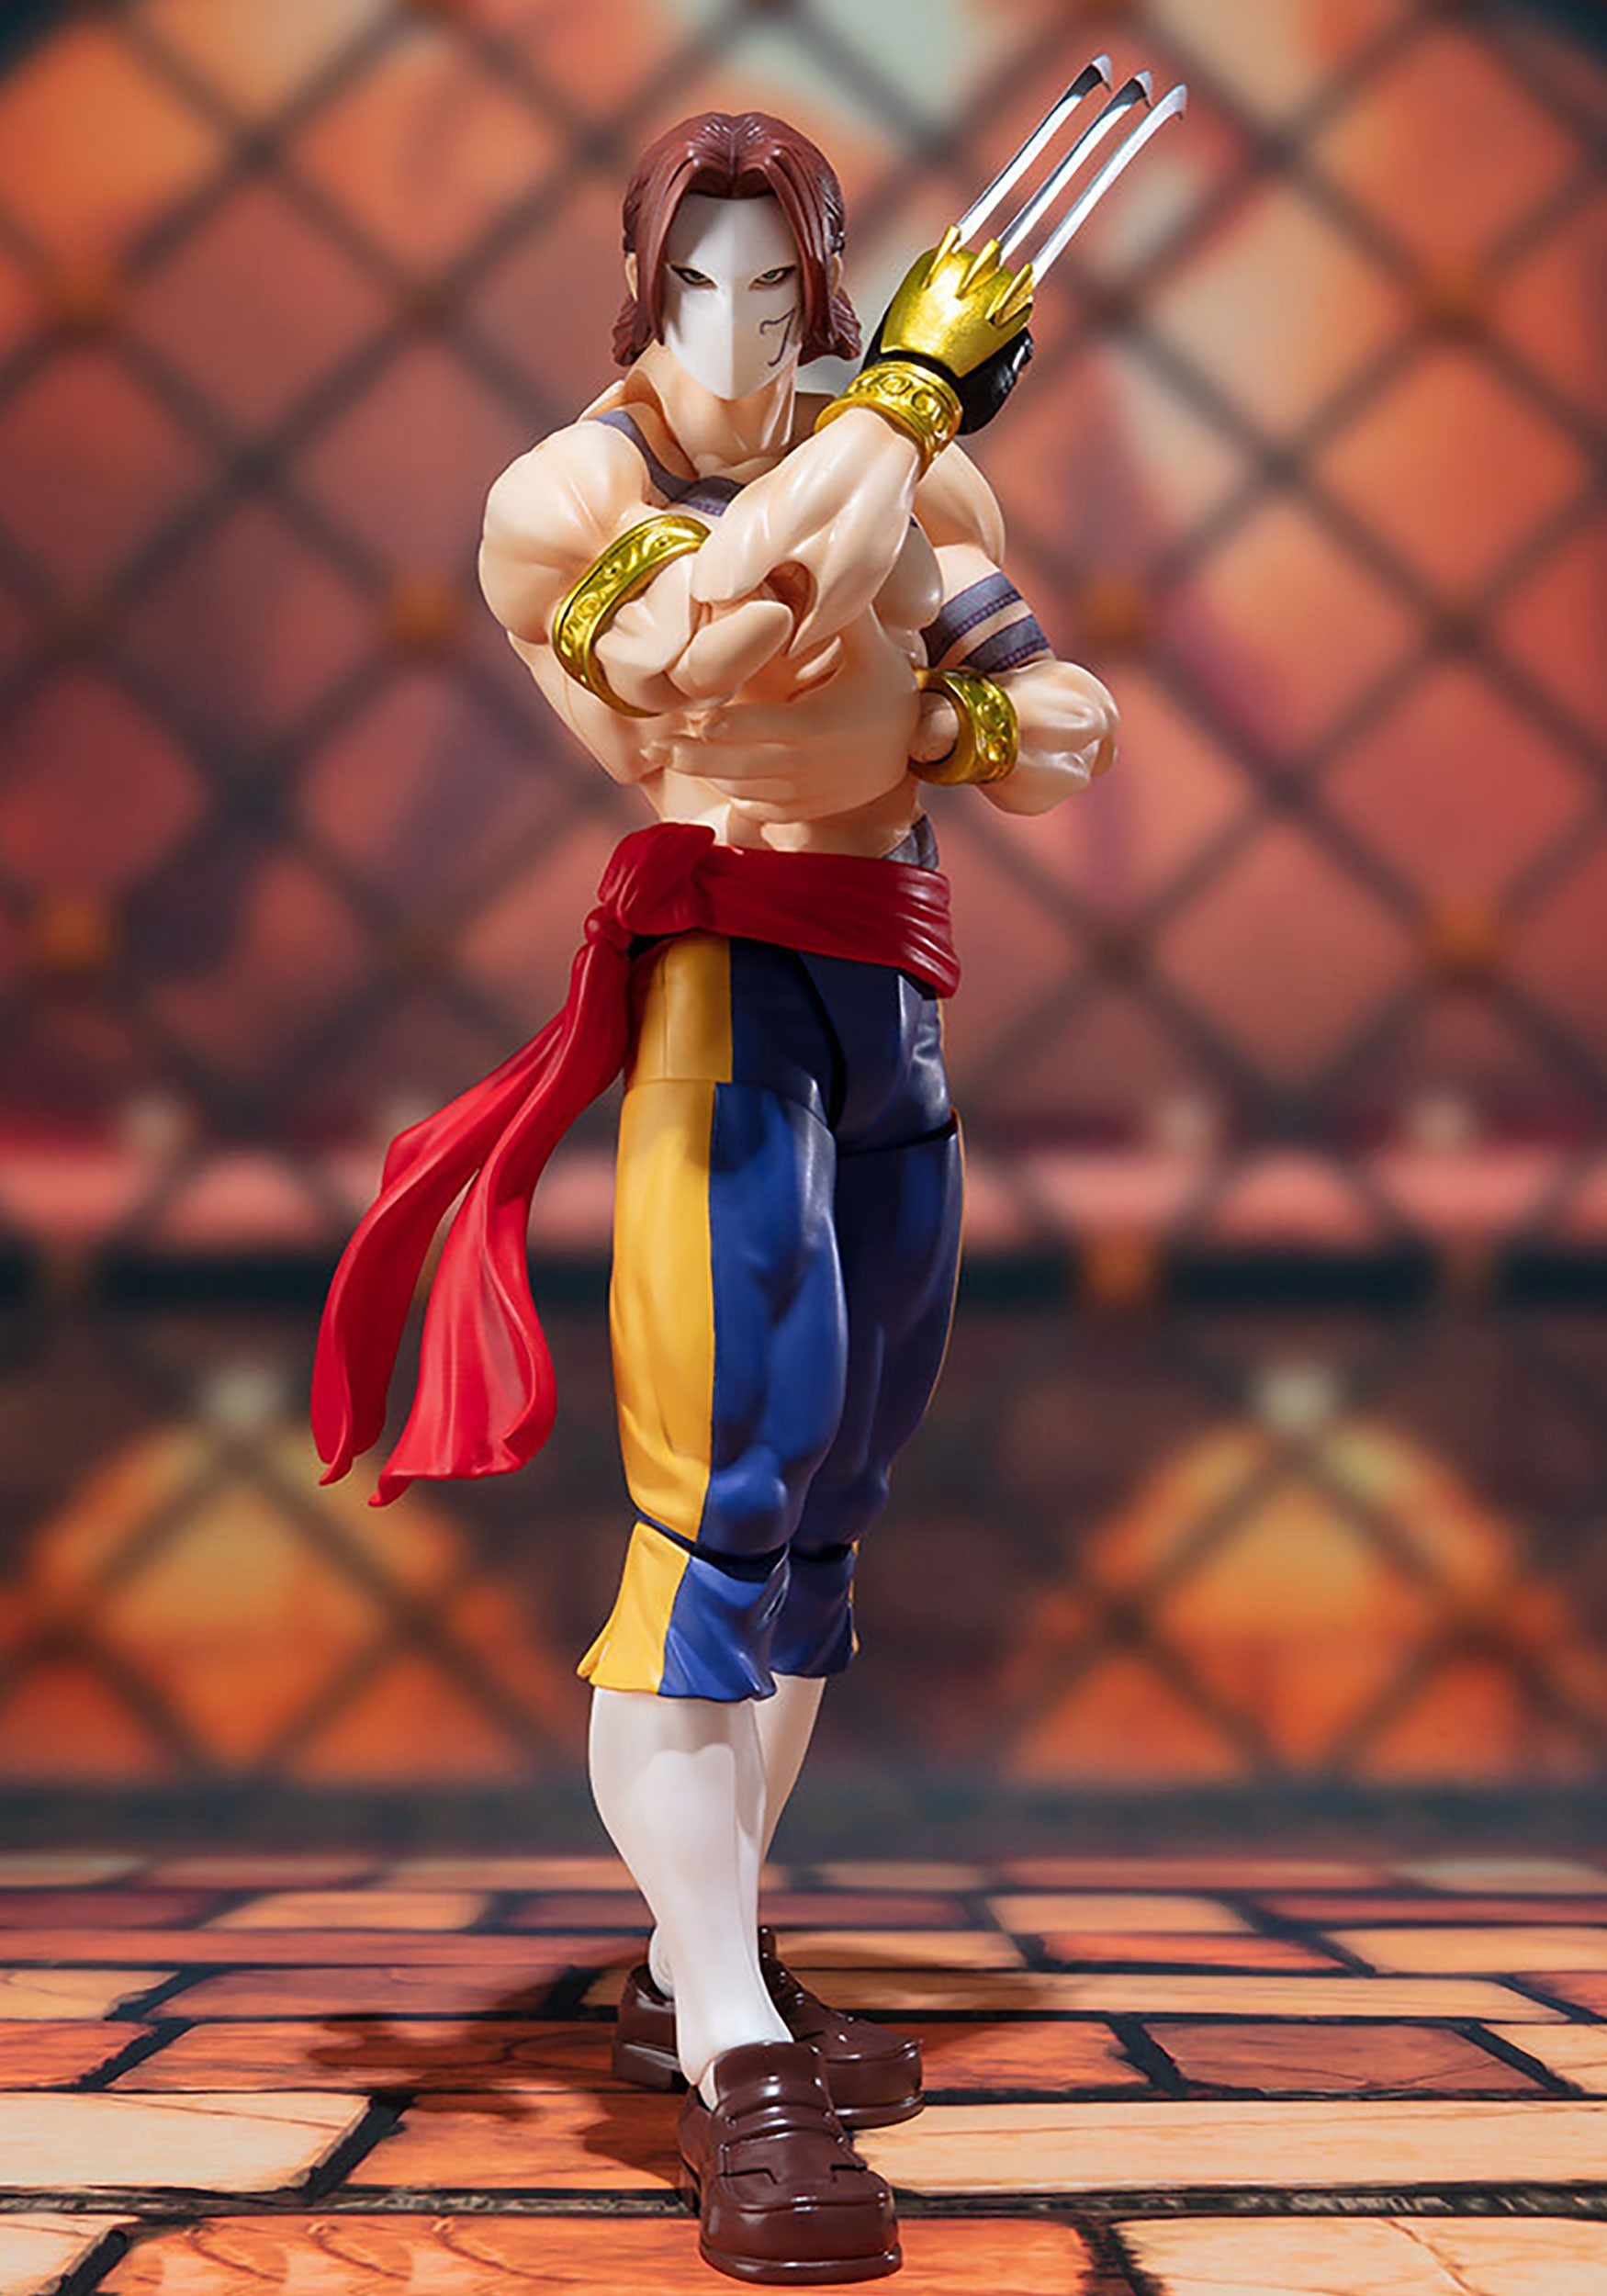 Street_Fighter_Vega_Bandai_SH_Figuarts_Collectible_Action_Figure